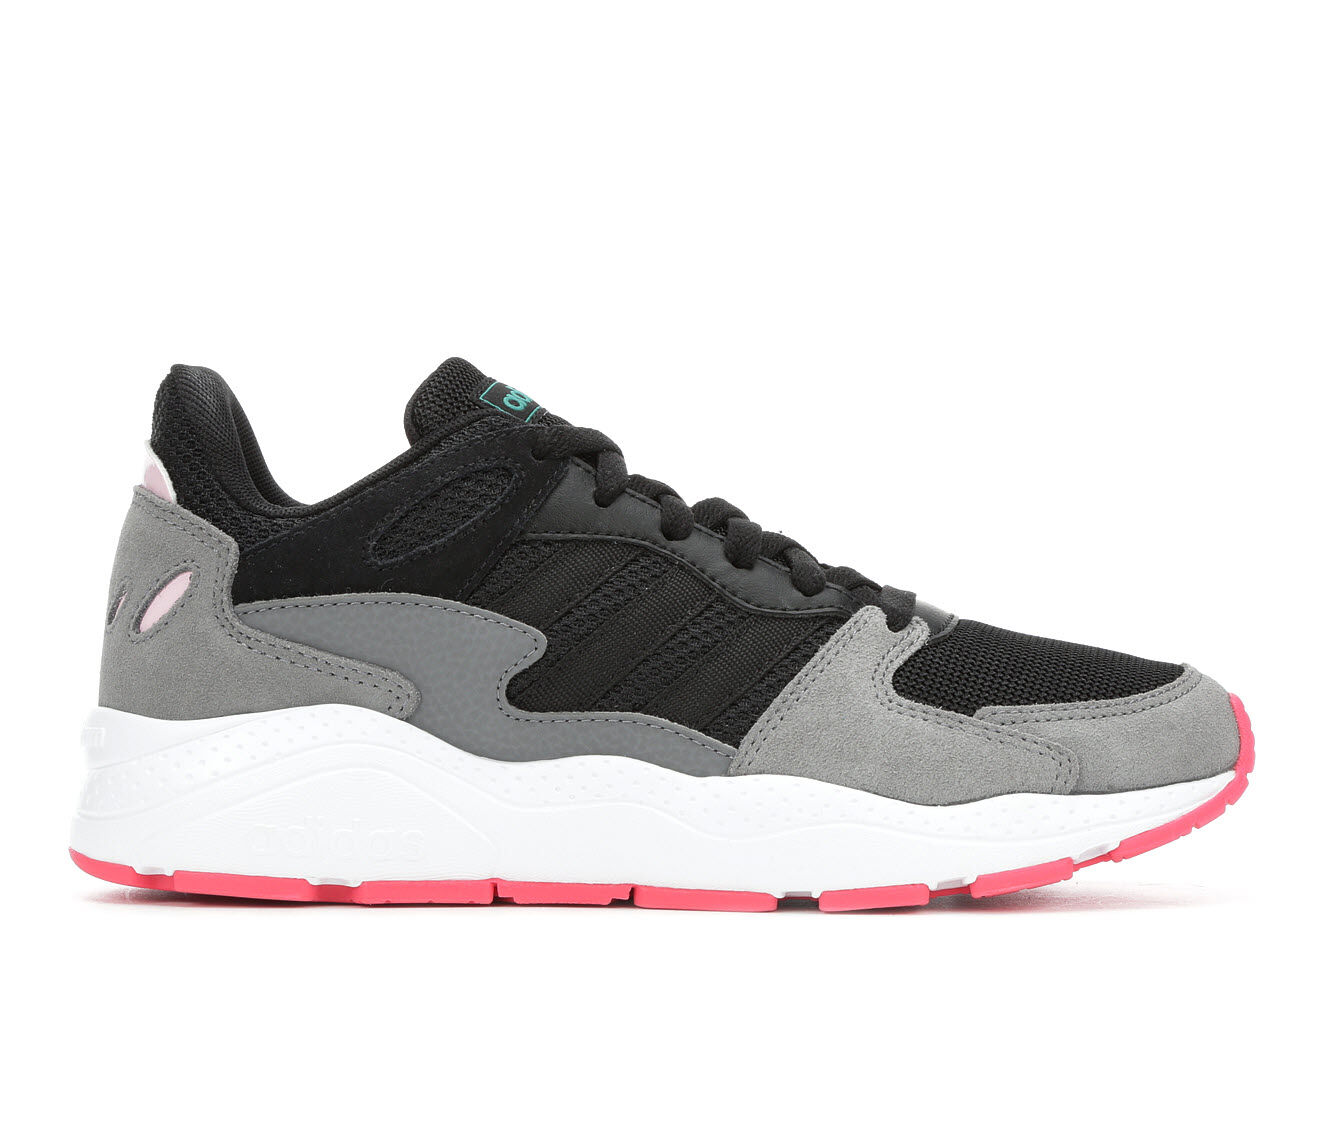 Women's Adidas Chaos Sneakers Black/Pink/Wht